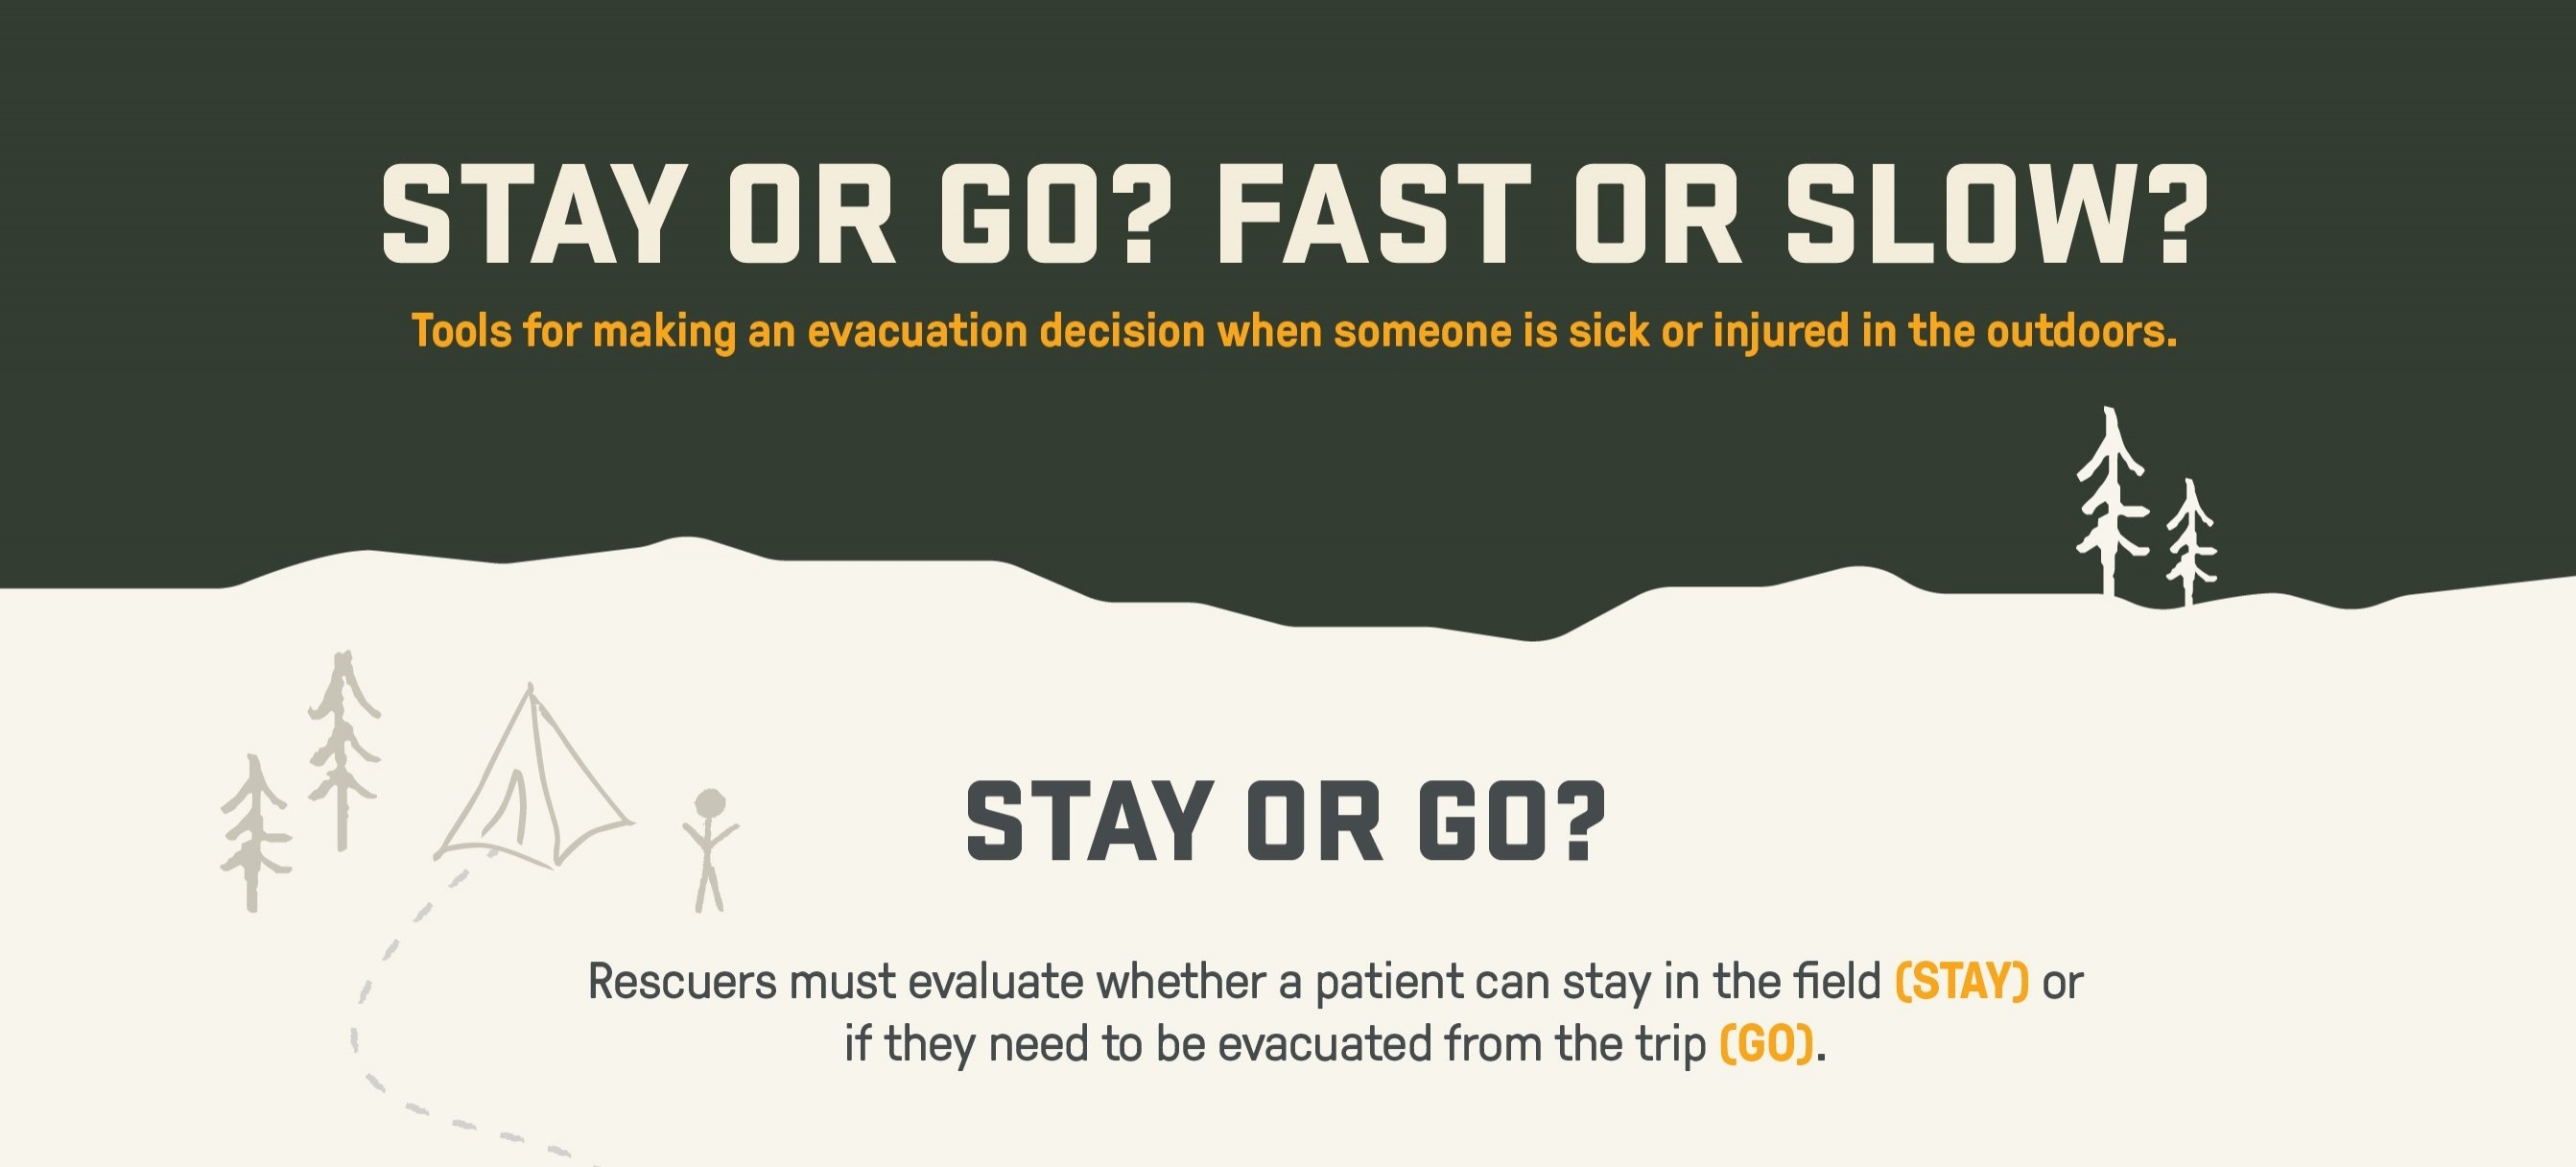 Stay or Go? Making Evacuation Decisions [Infographic]